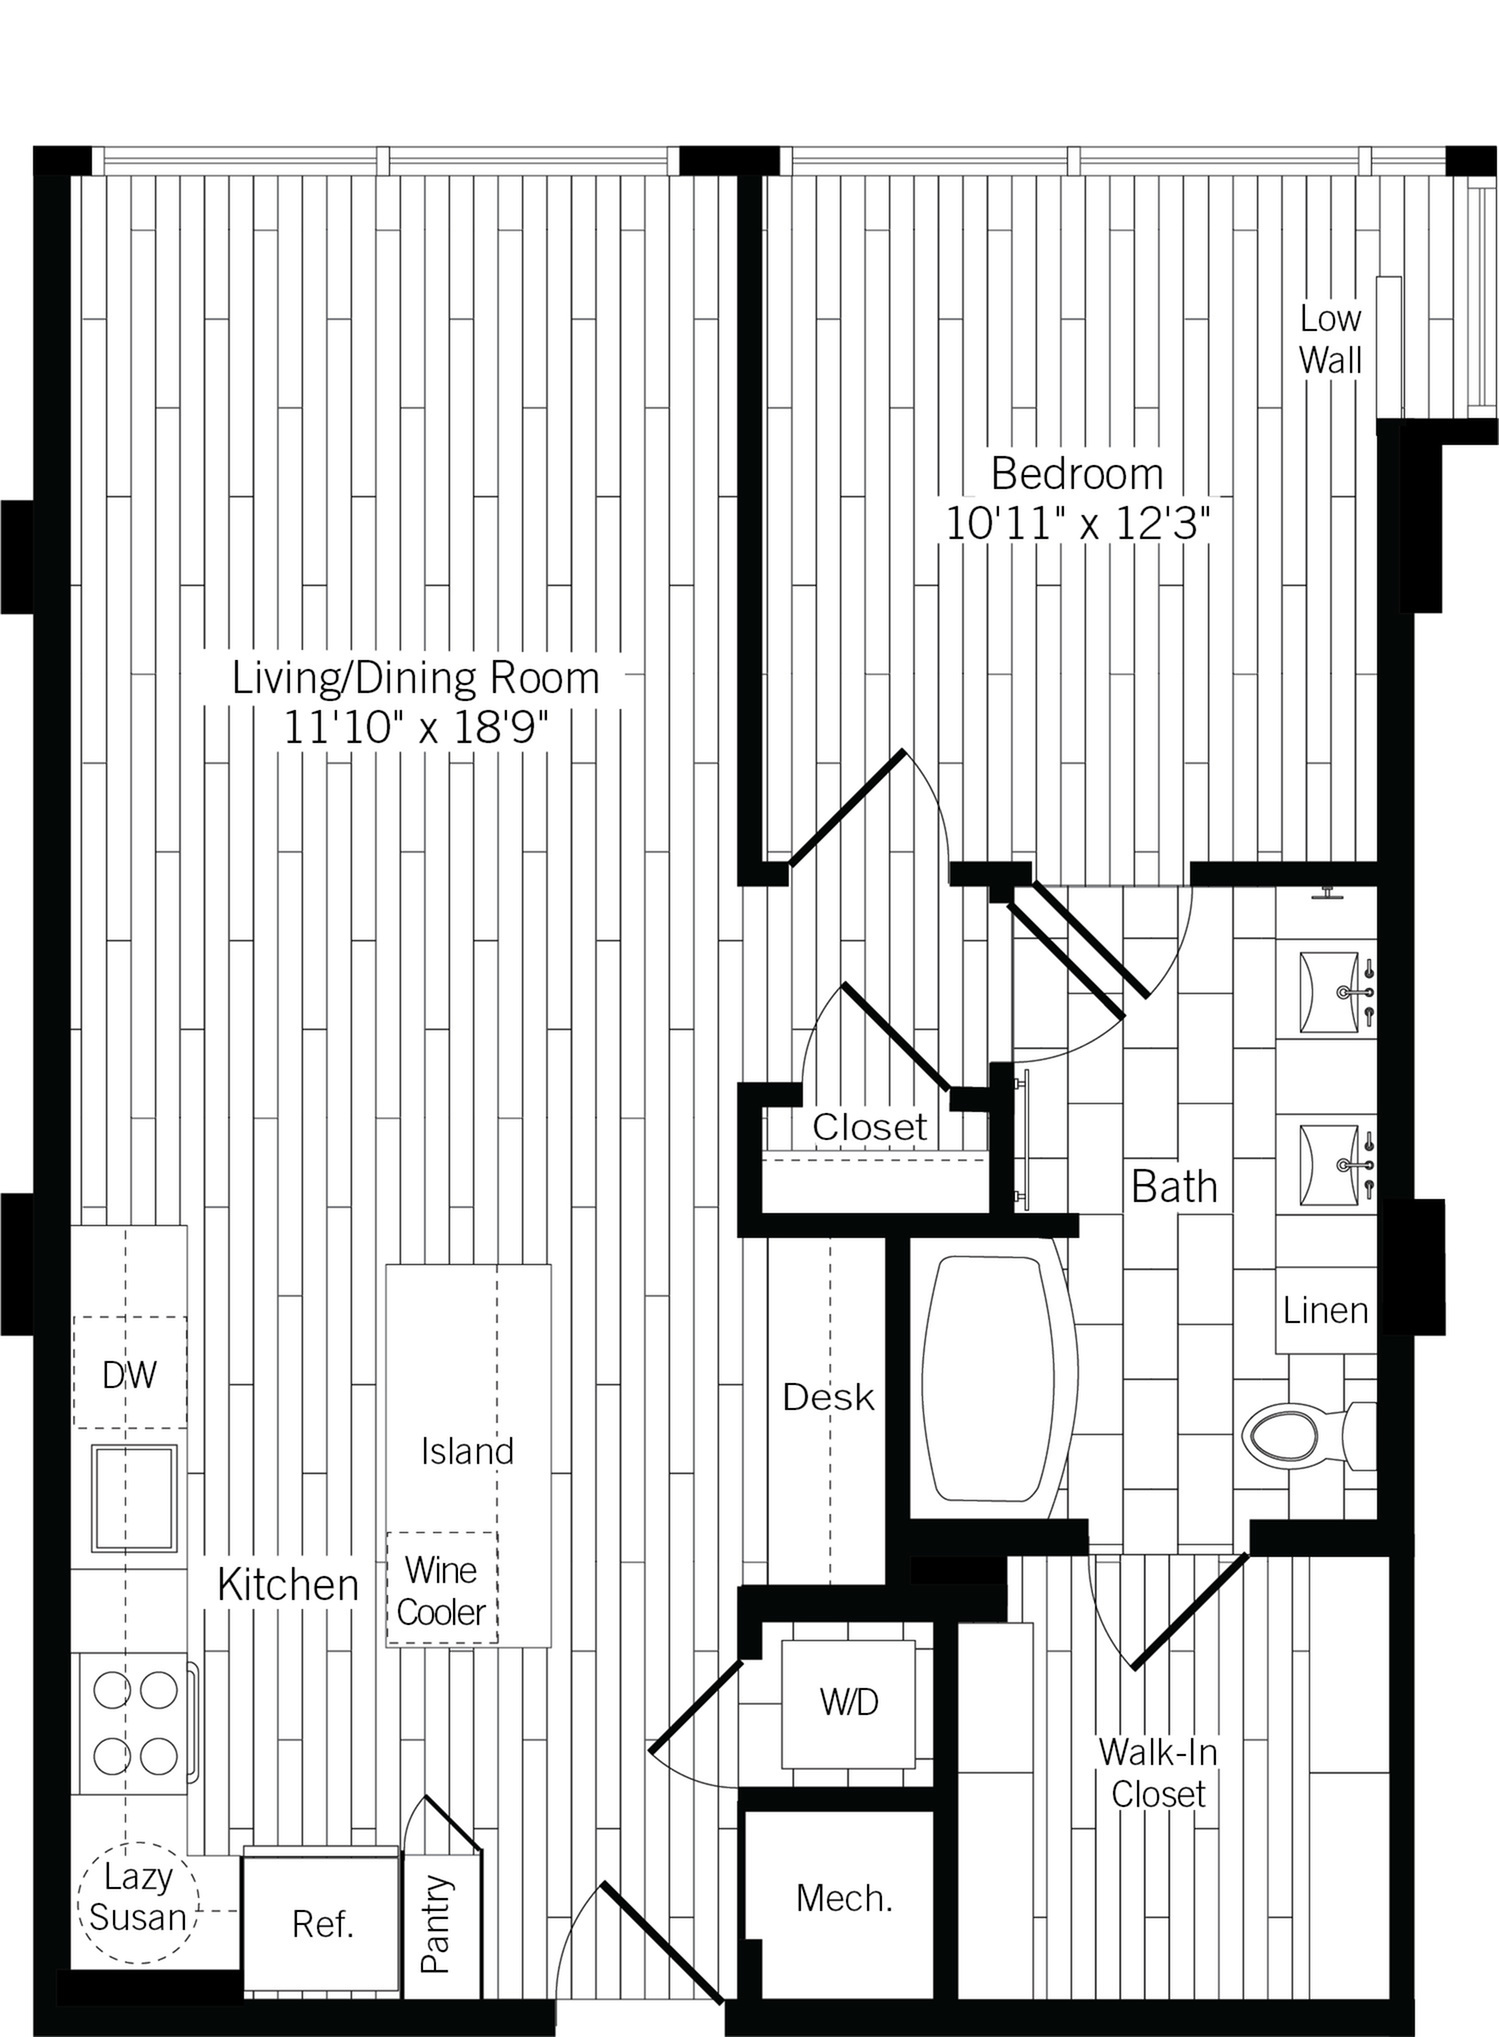 827 square foot one bedroom one bath with wood plank flooring throughout apartment floorplan image